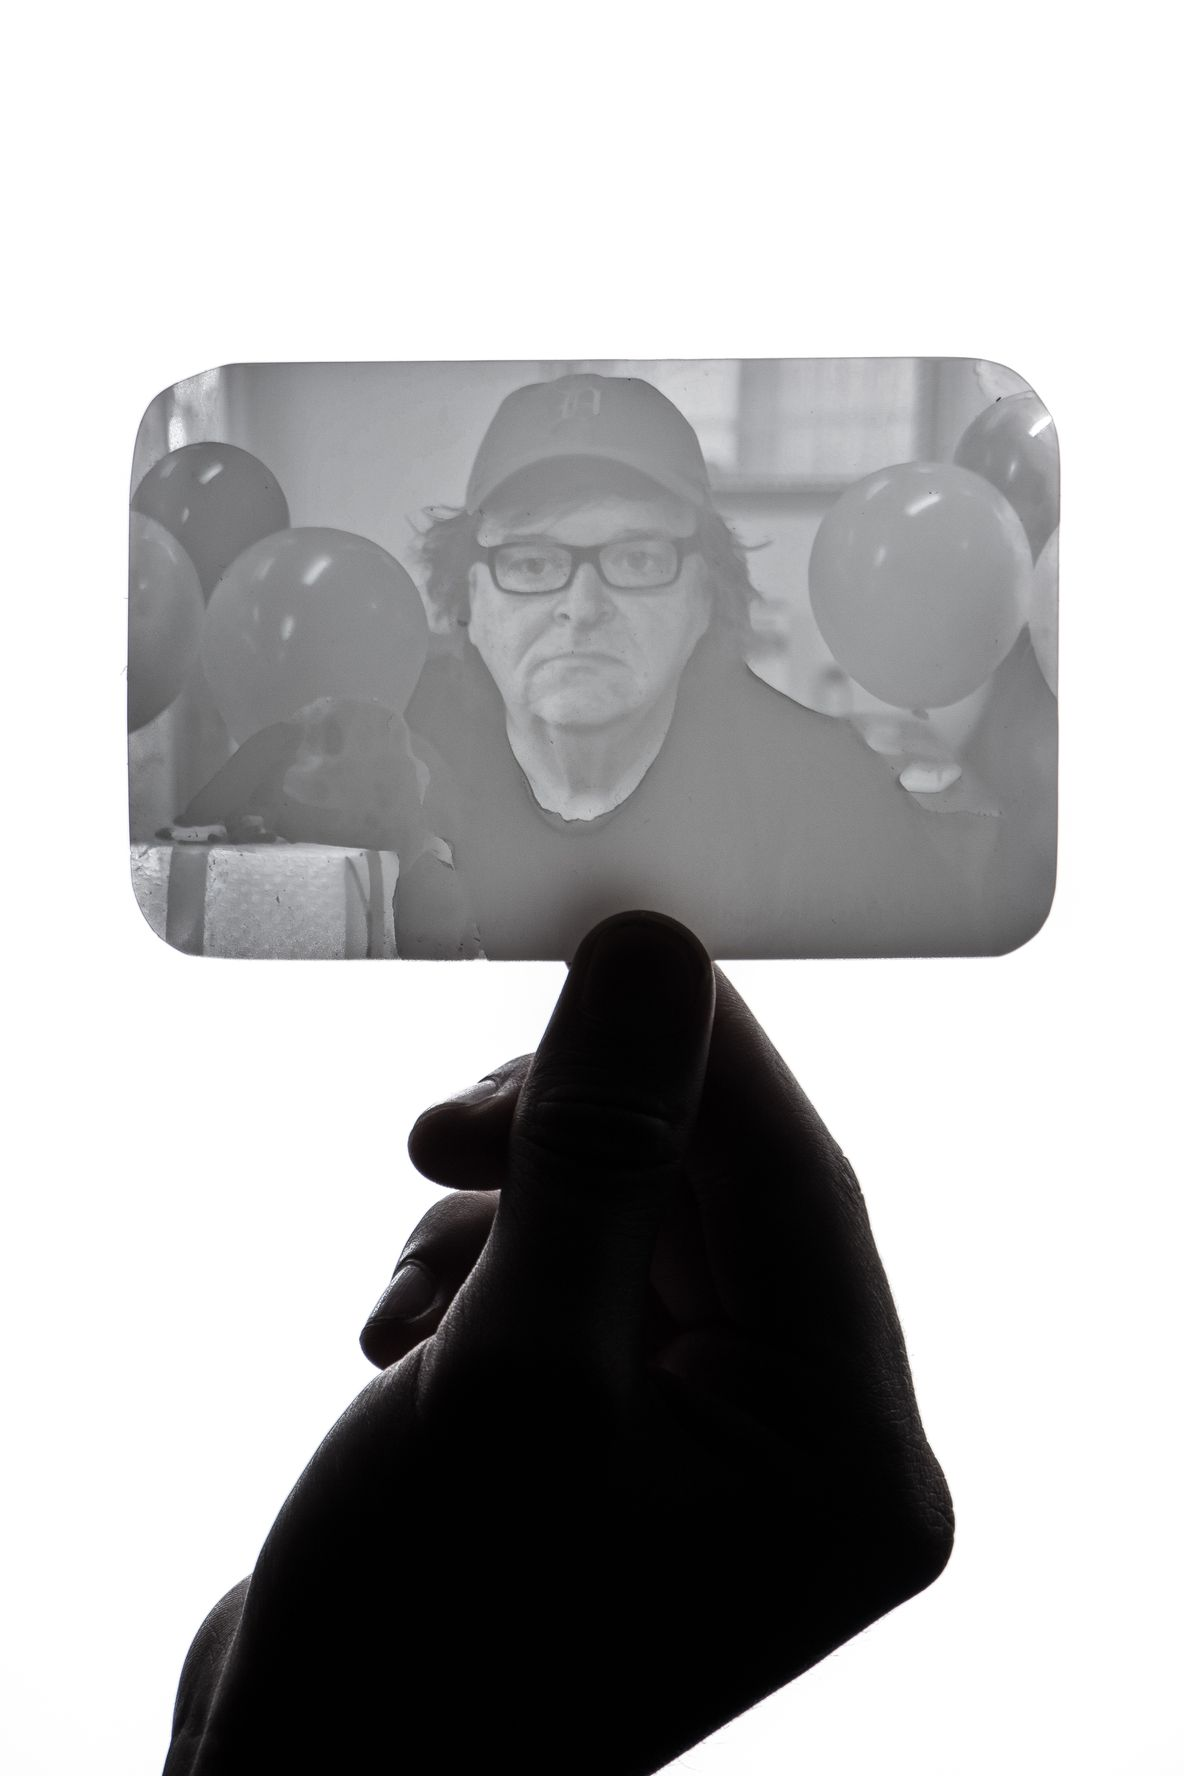 Michael Moore Lithopane: This image was created in photoshop and then converted to a 3D model which was printed at 25 microns to create a lithopane. This is the highest resolution setting of the Form 1+ 3D Printer.